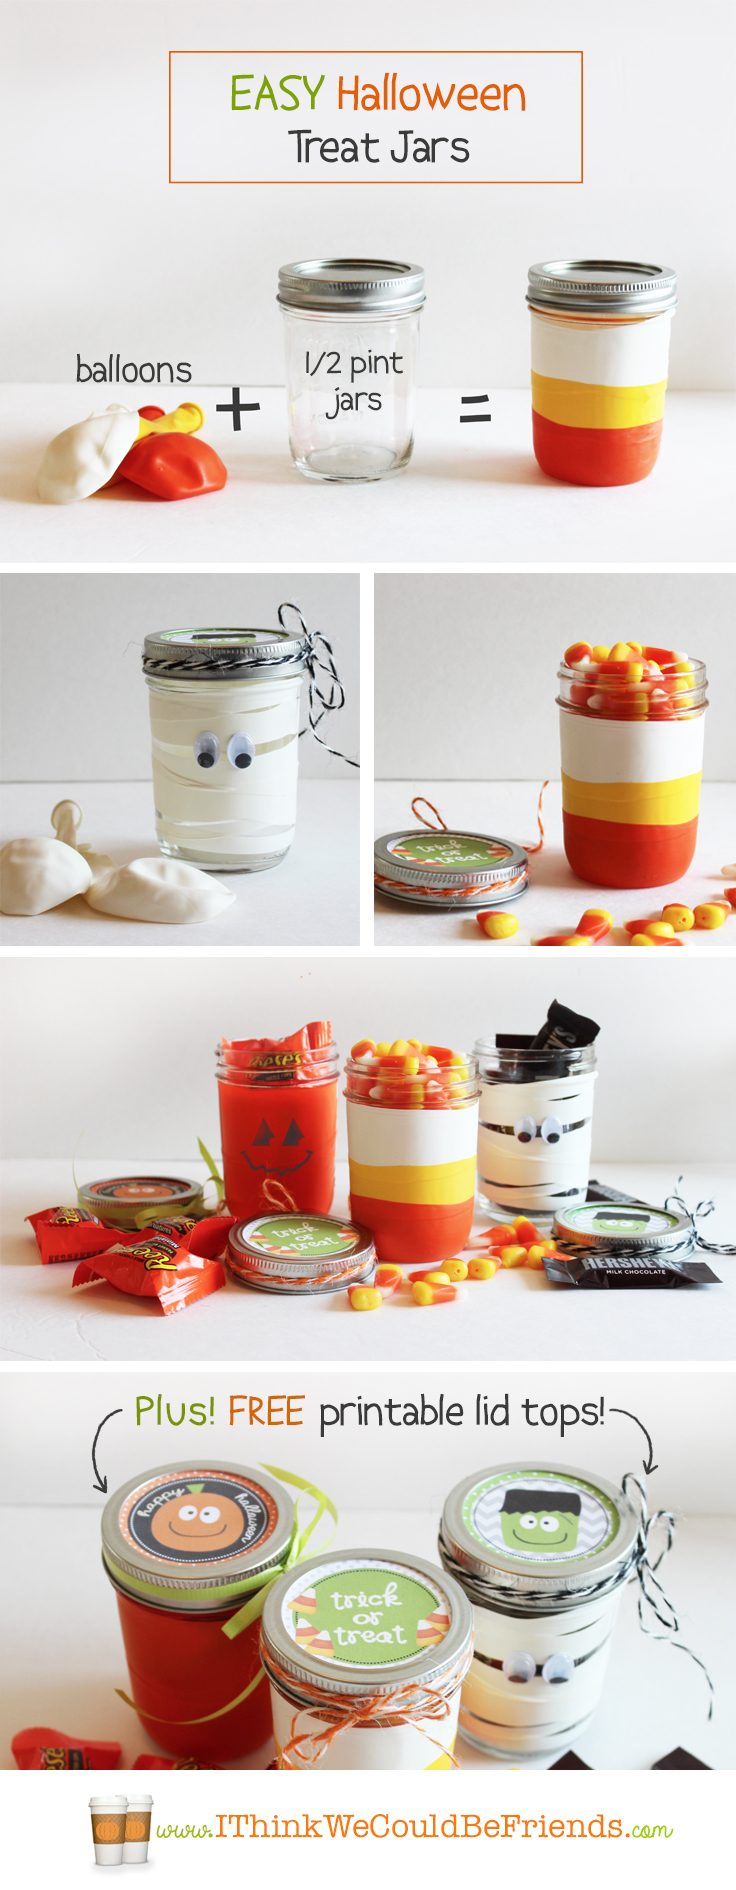 Easy Halloween Treat Jars: Just cut the tops & bottoms off of balloons & stretch over mason jars for cute Halloween treat jars! Plus FREE printable toppers! #Halloween #Mason #Jar #Crafts